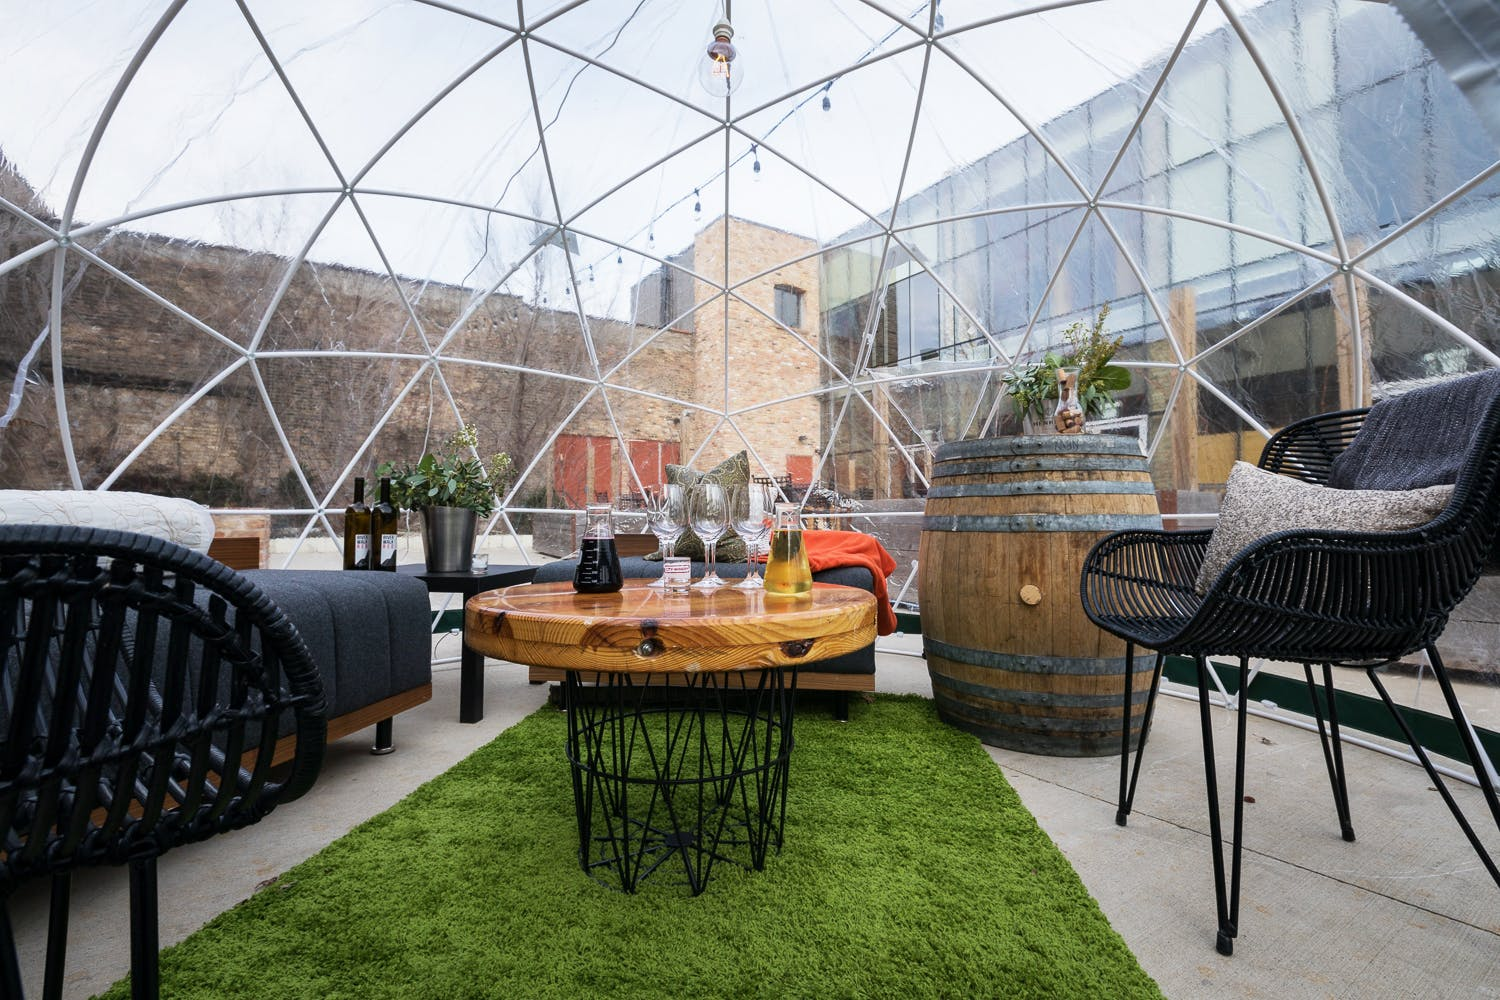 city winery riverwalk dome bubble chicago spring summer activities events photoshopped